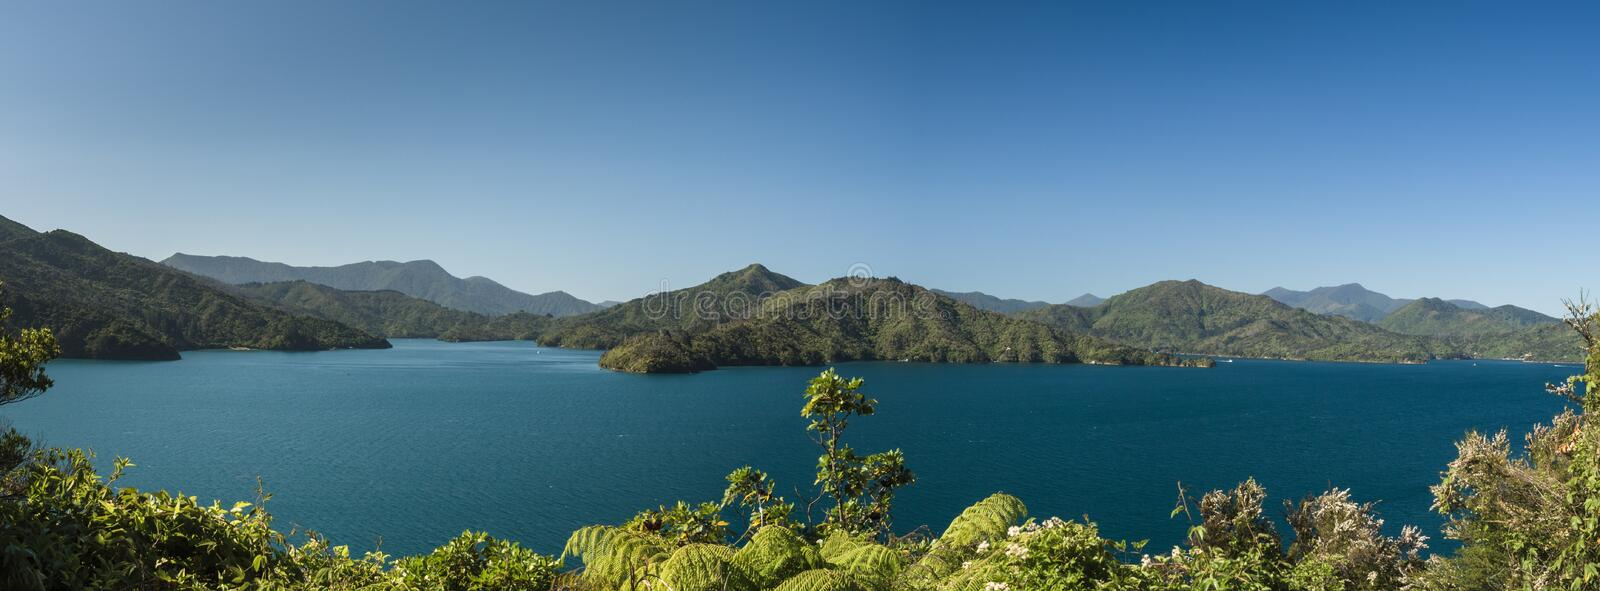 Panoramic view of the Marlborough Sounds, New Zealand stock images